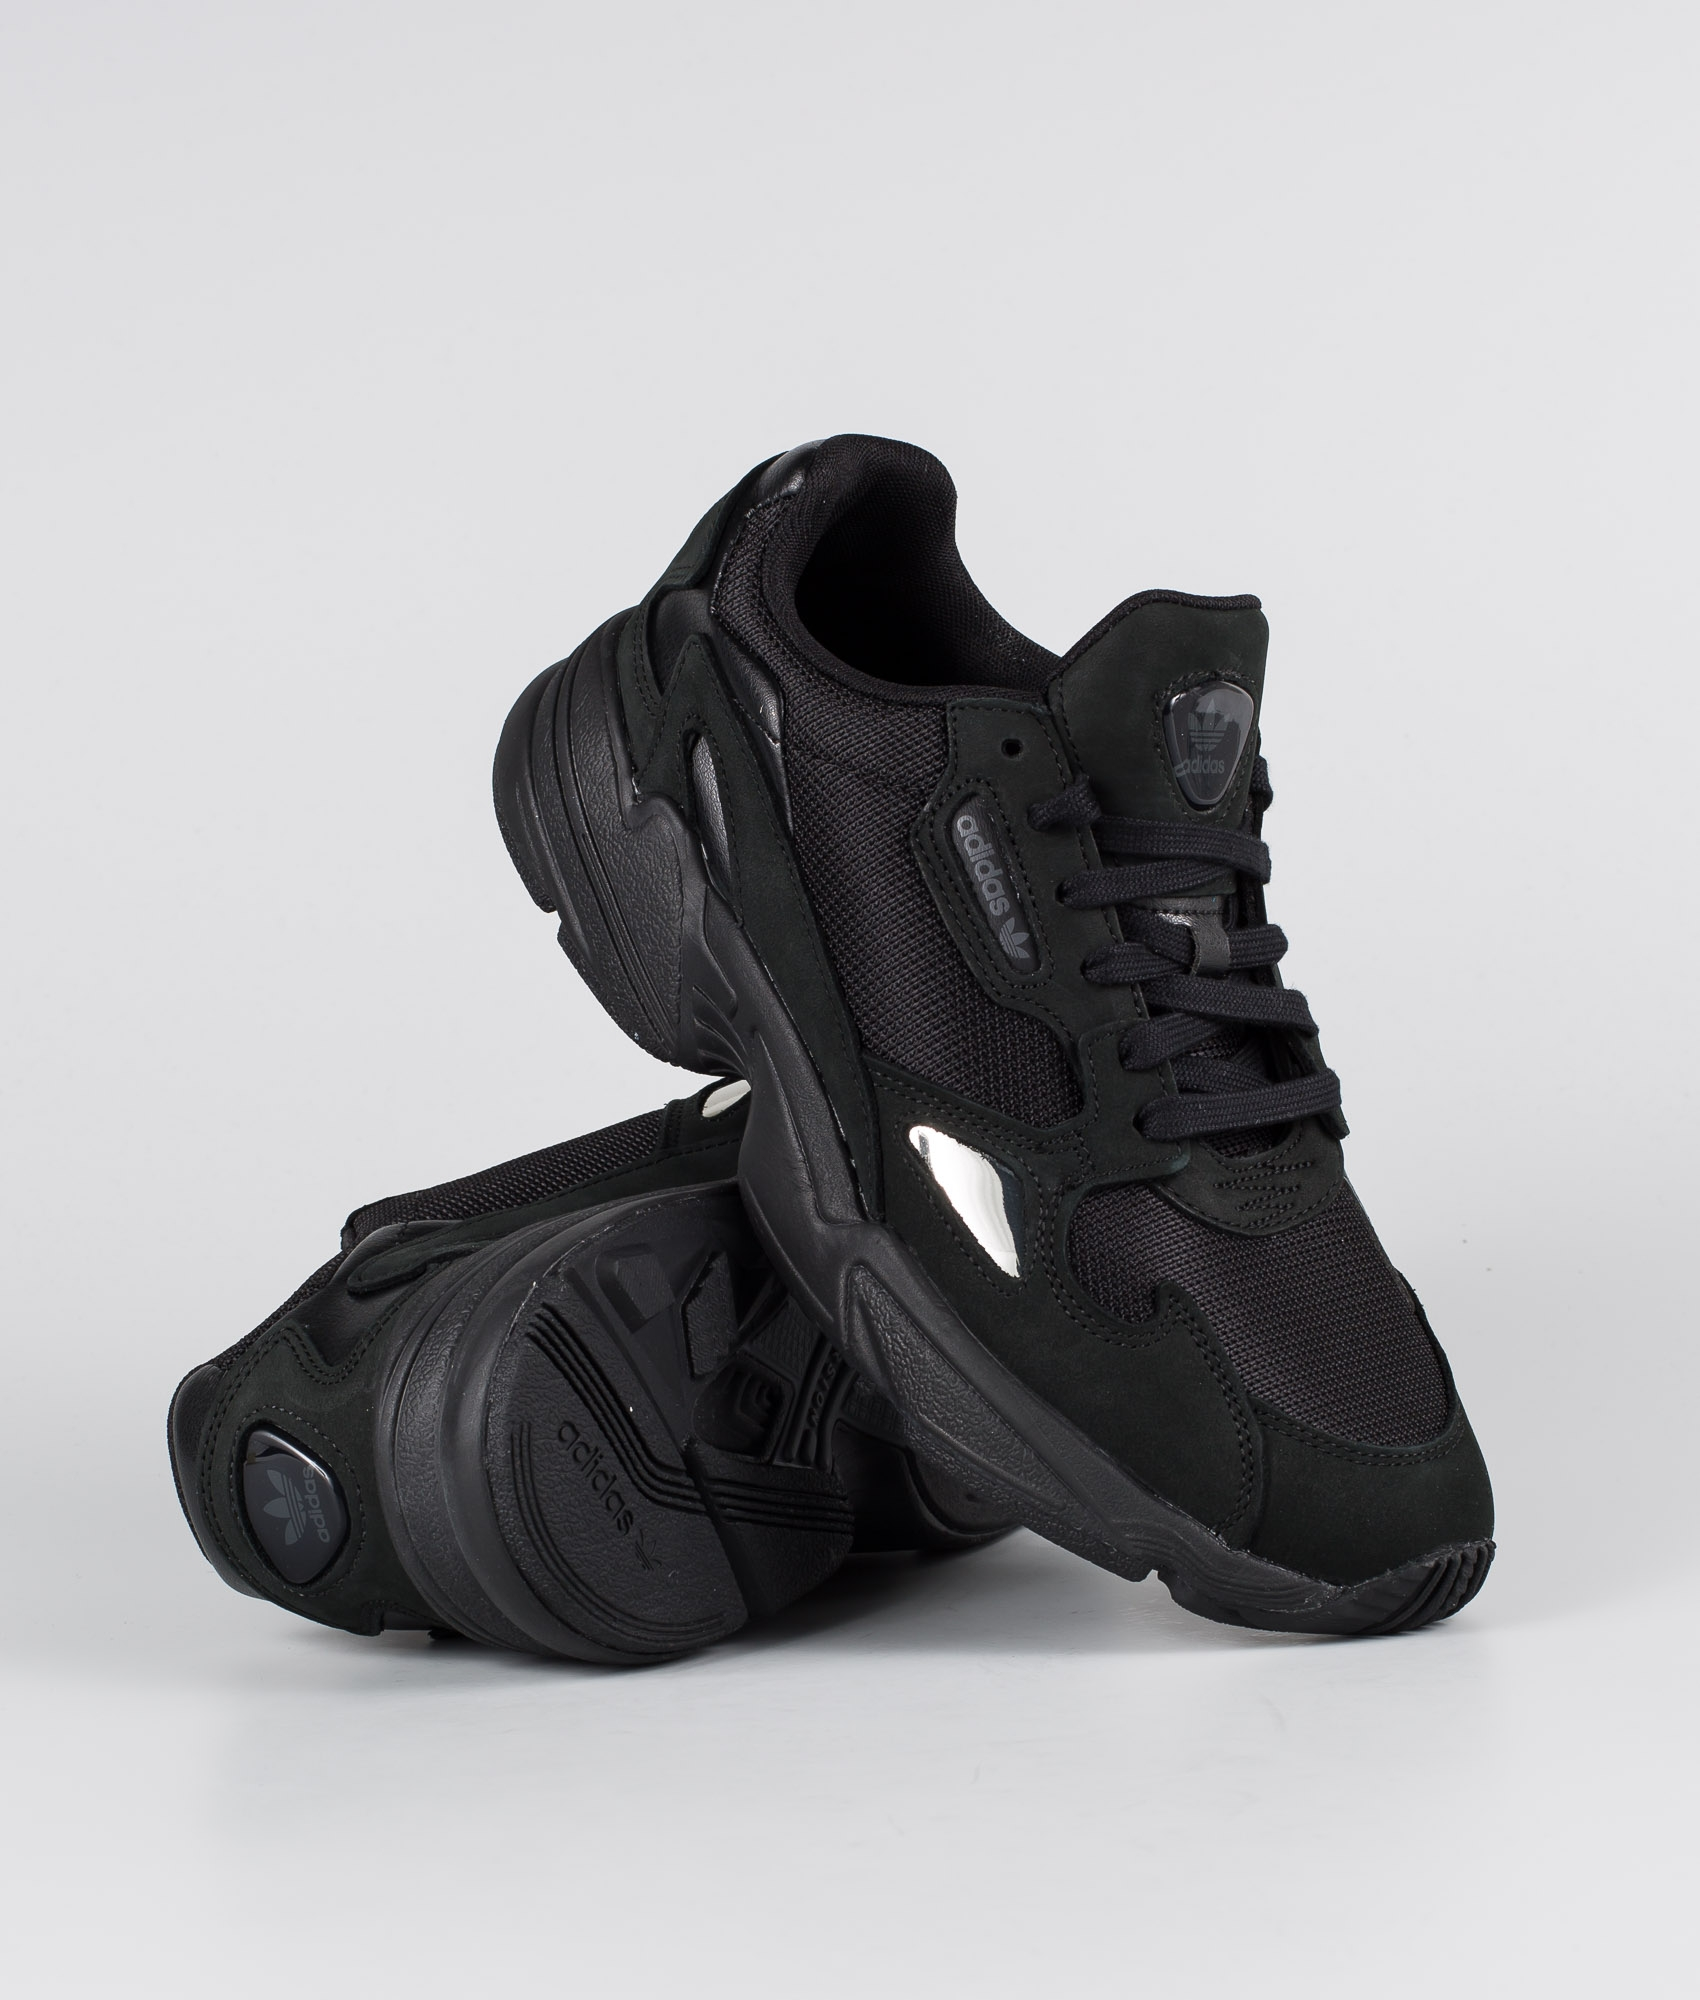 flotador Premonición Mejor  Adidas Originals Falcon Shoes Core Black/Core Black/Grey Five -  Ridestore.com